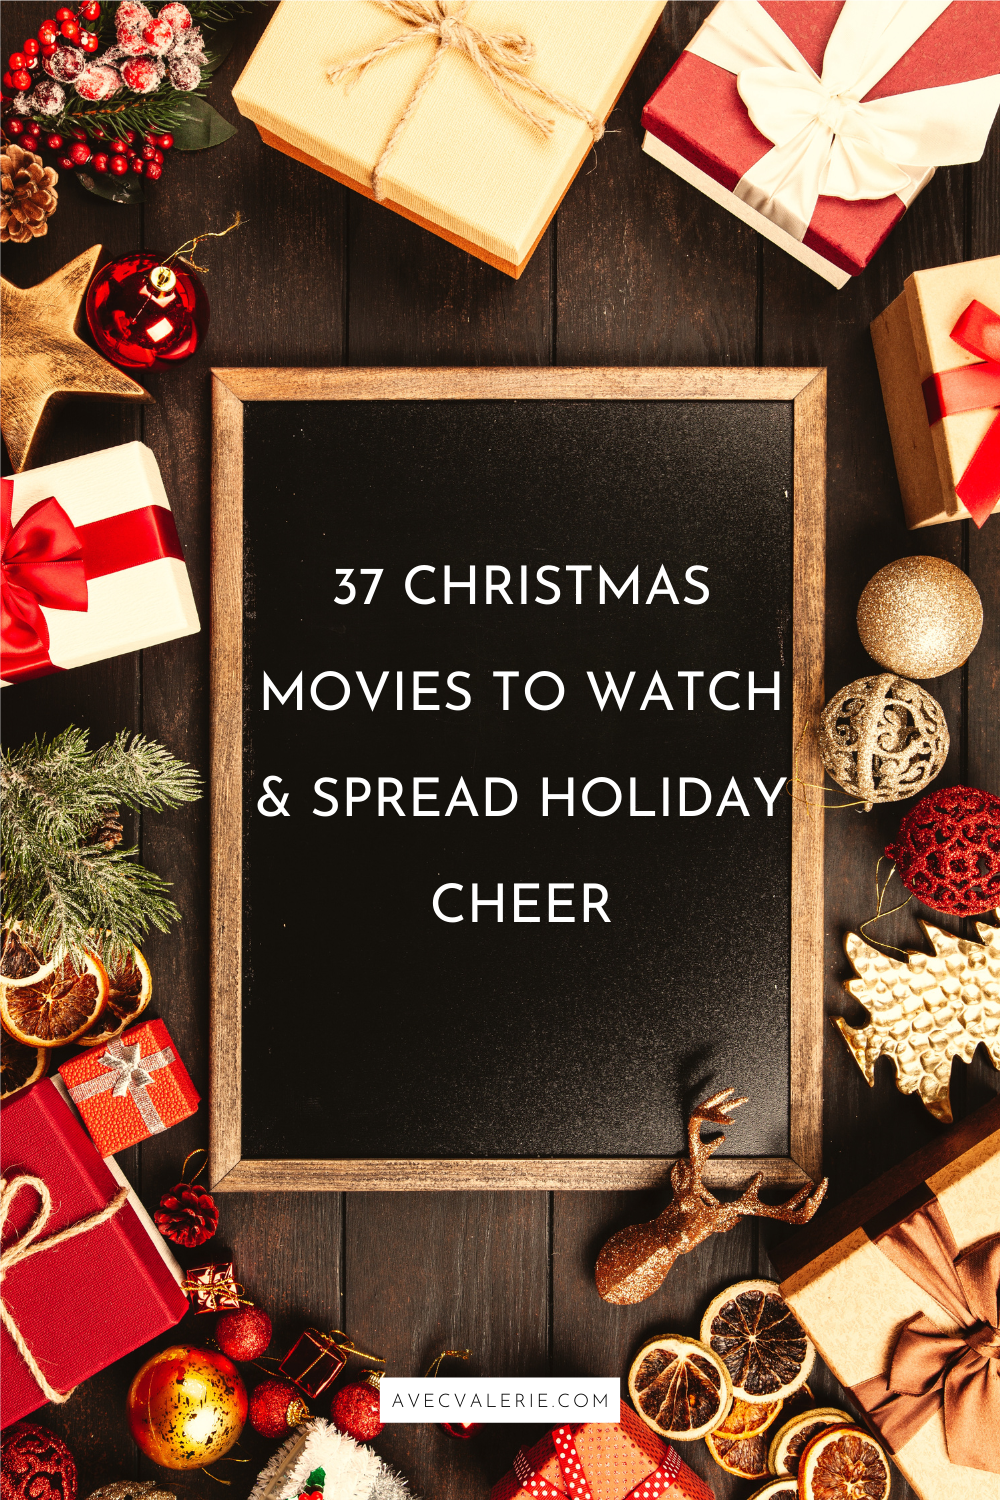 37 Christmas Movies To Watch And Spread Holiday Cheer Lifestyle Fashion Potluck